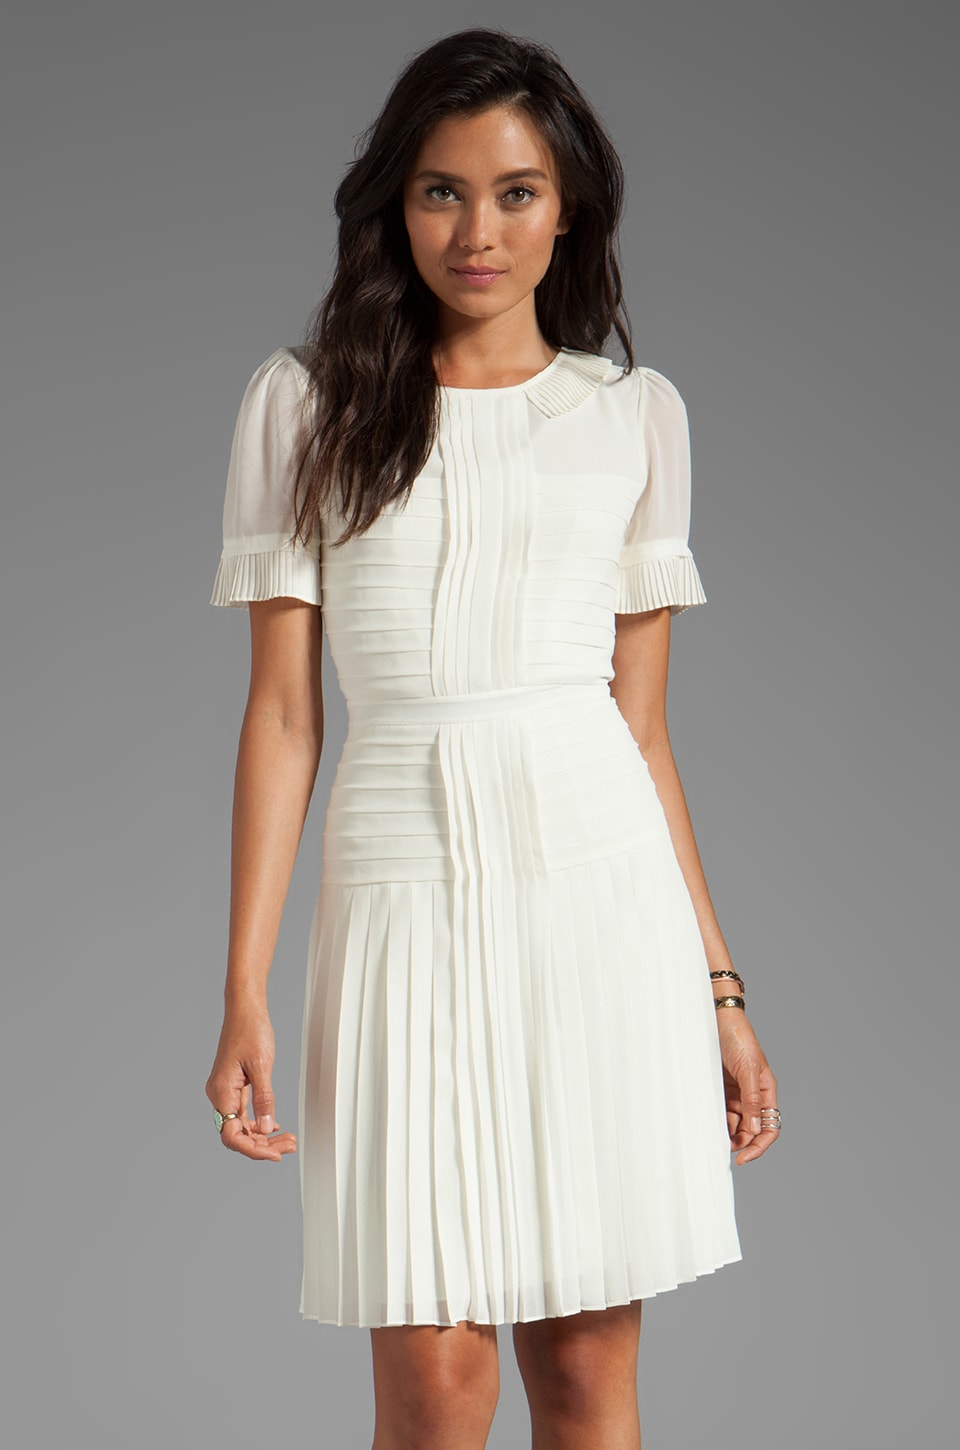 Alice by Temperley Kyoto Tea Dress in Ivory